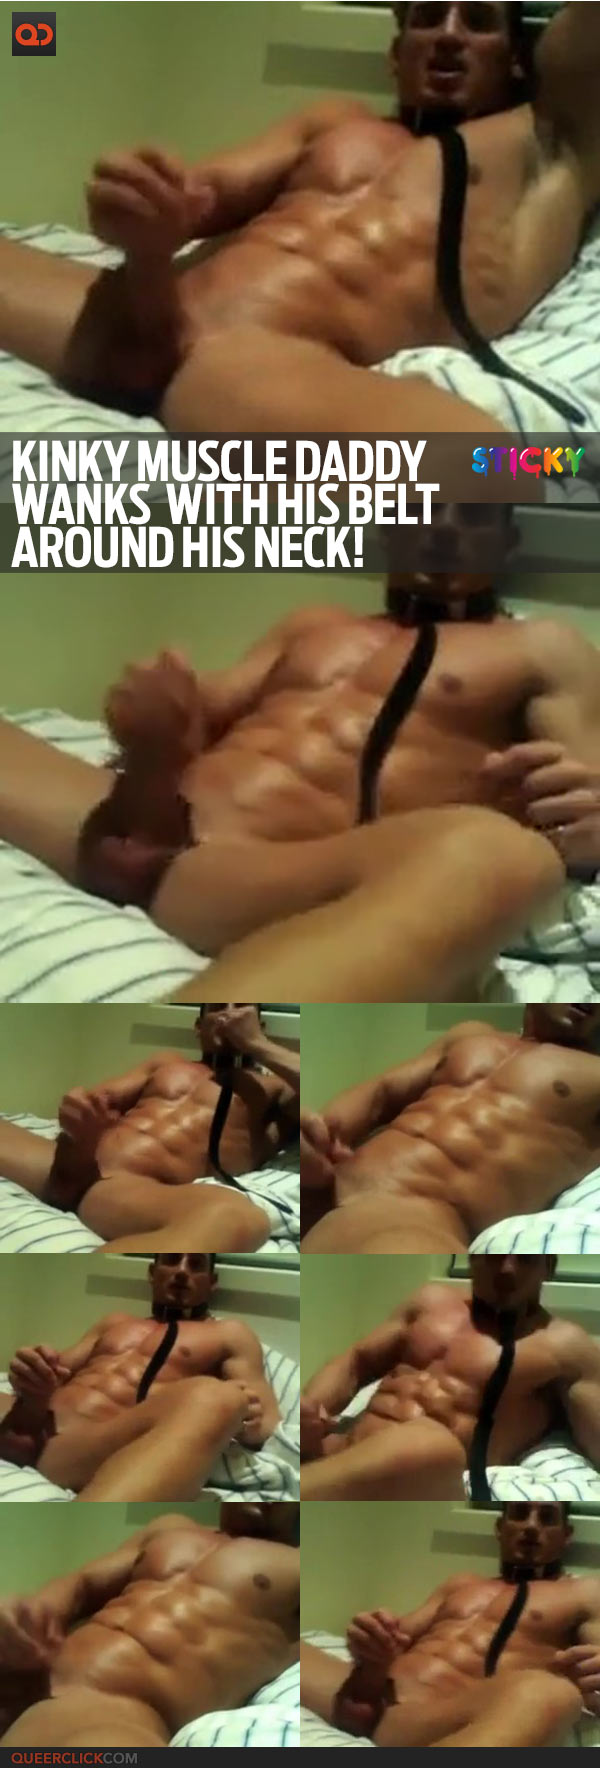 Kinky Muscle Daddy Wanks With His Belt Around His Neck!